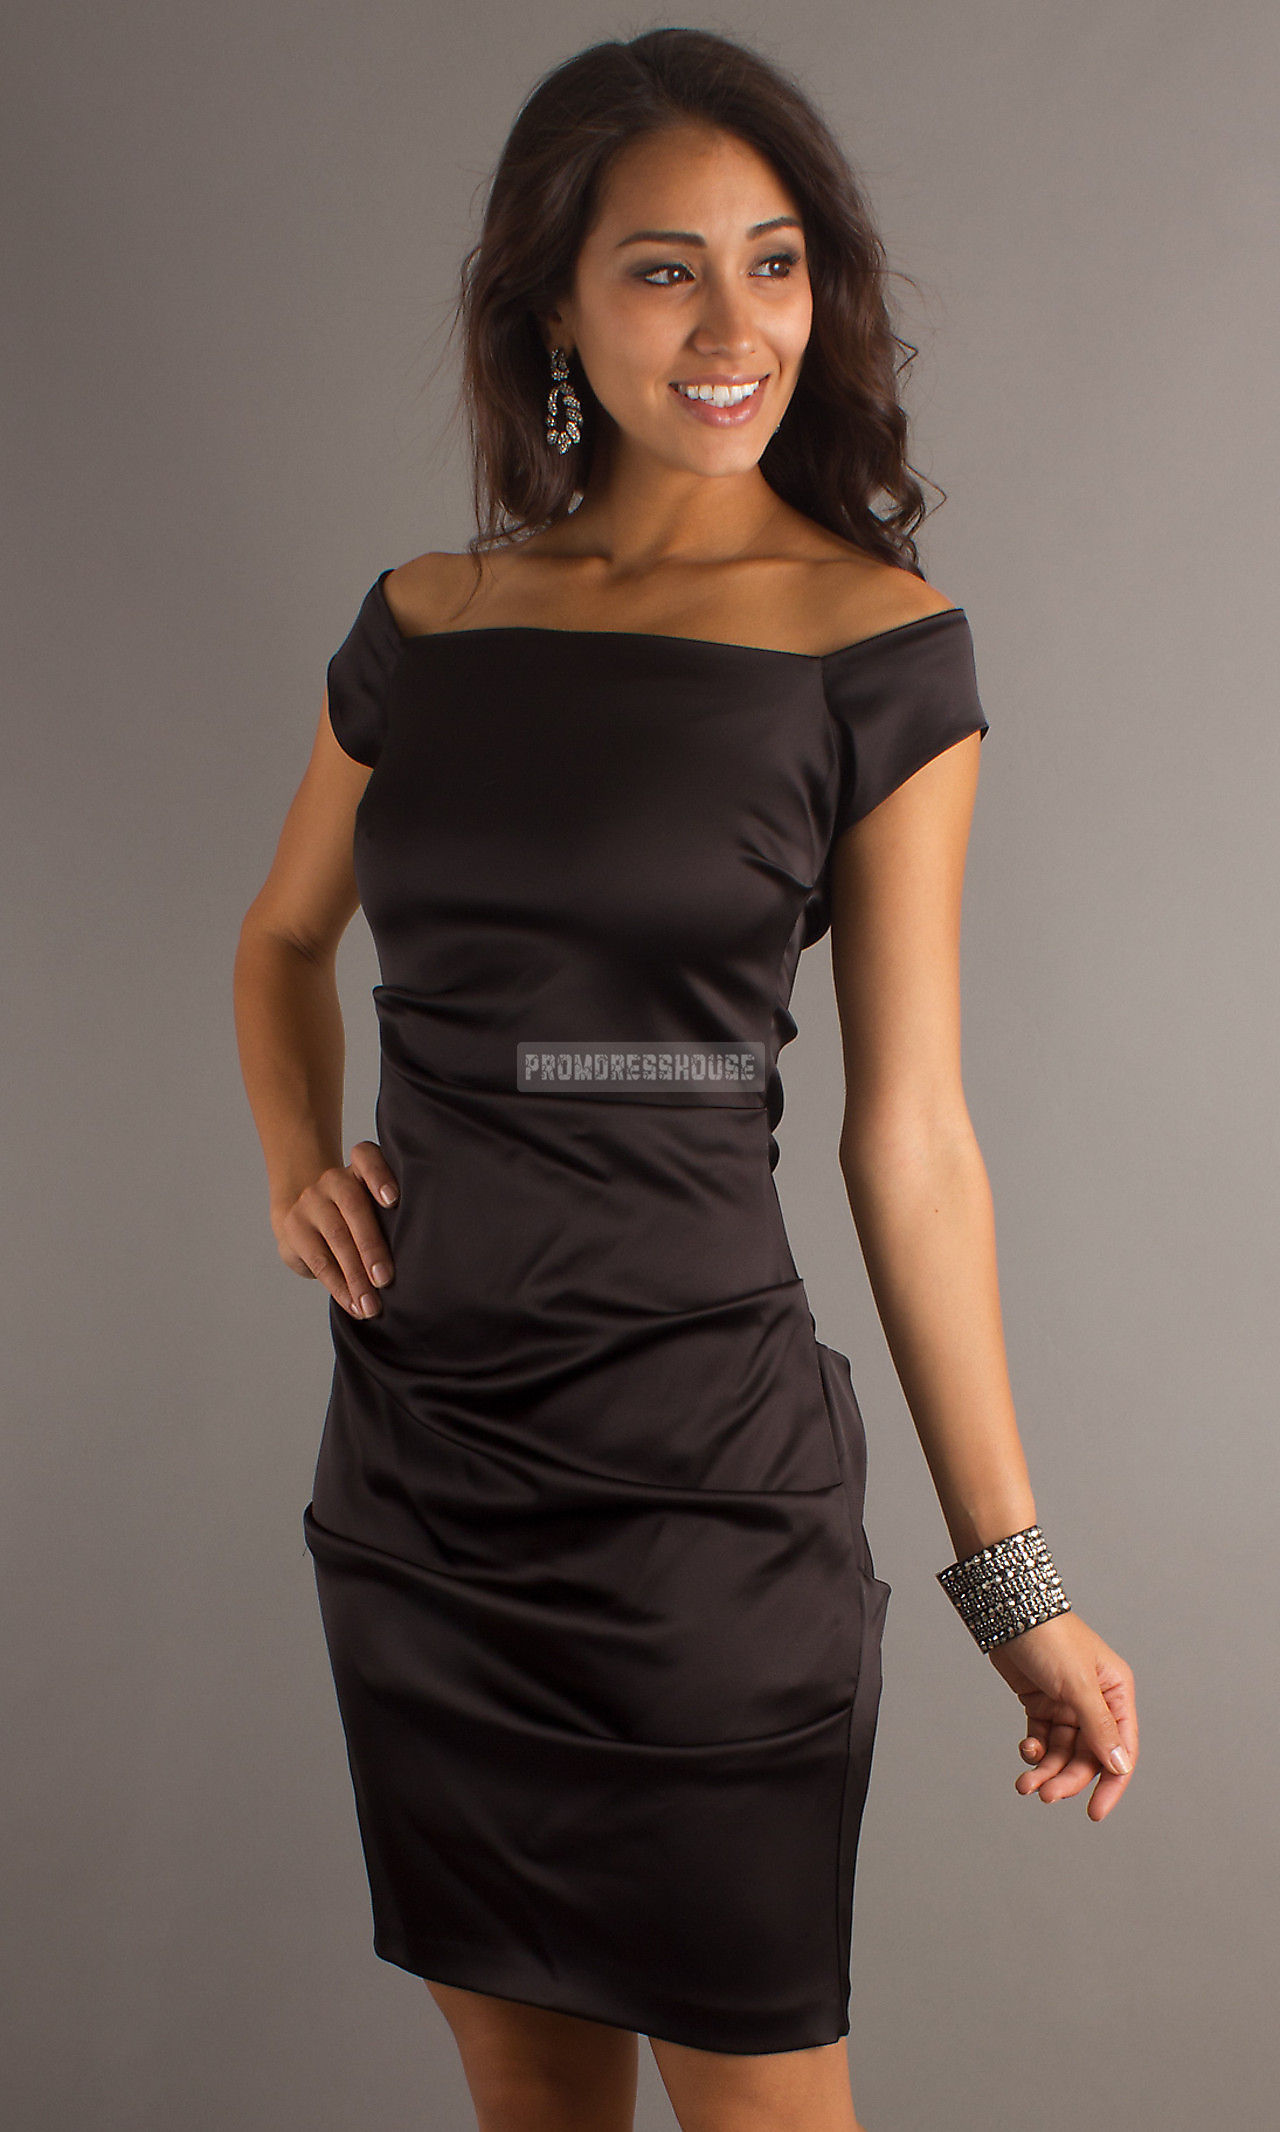 Zipper Sheath Satin Black Off-the-shoulder Cocktail Dress - Promdresshouse.com